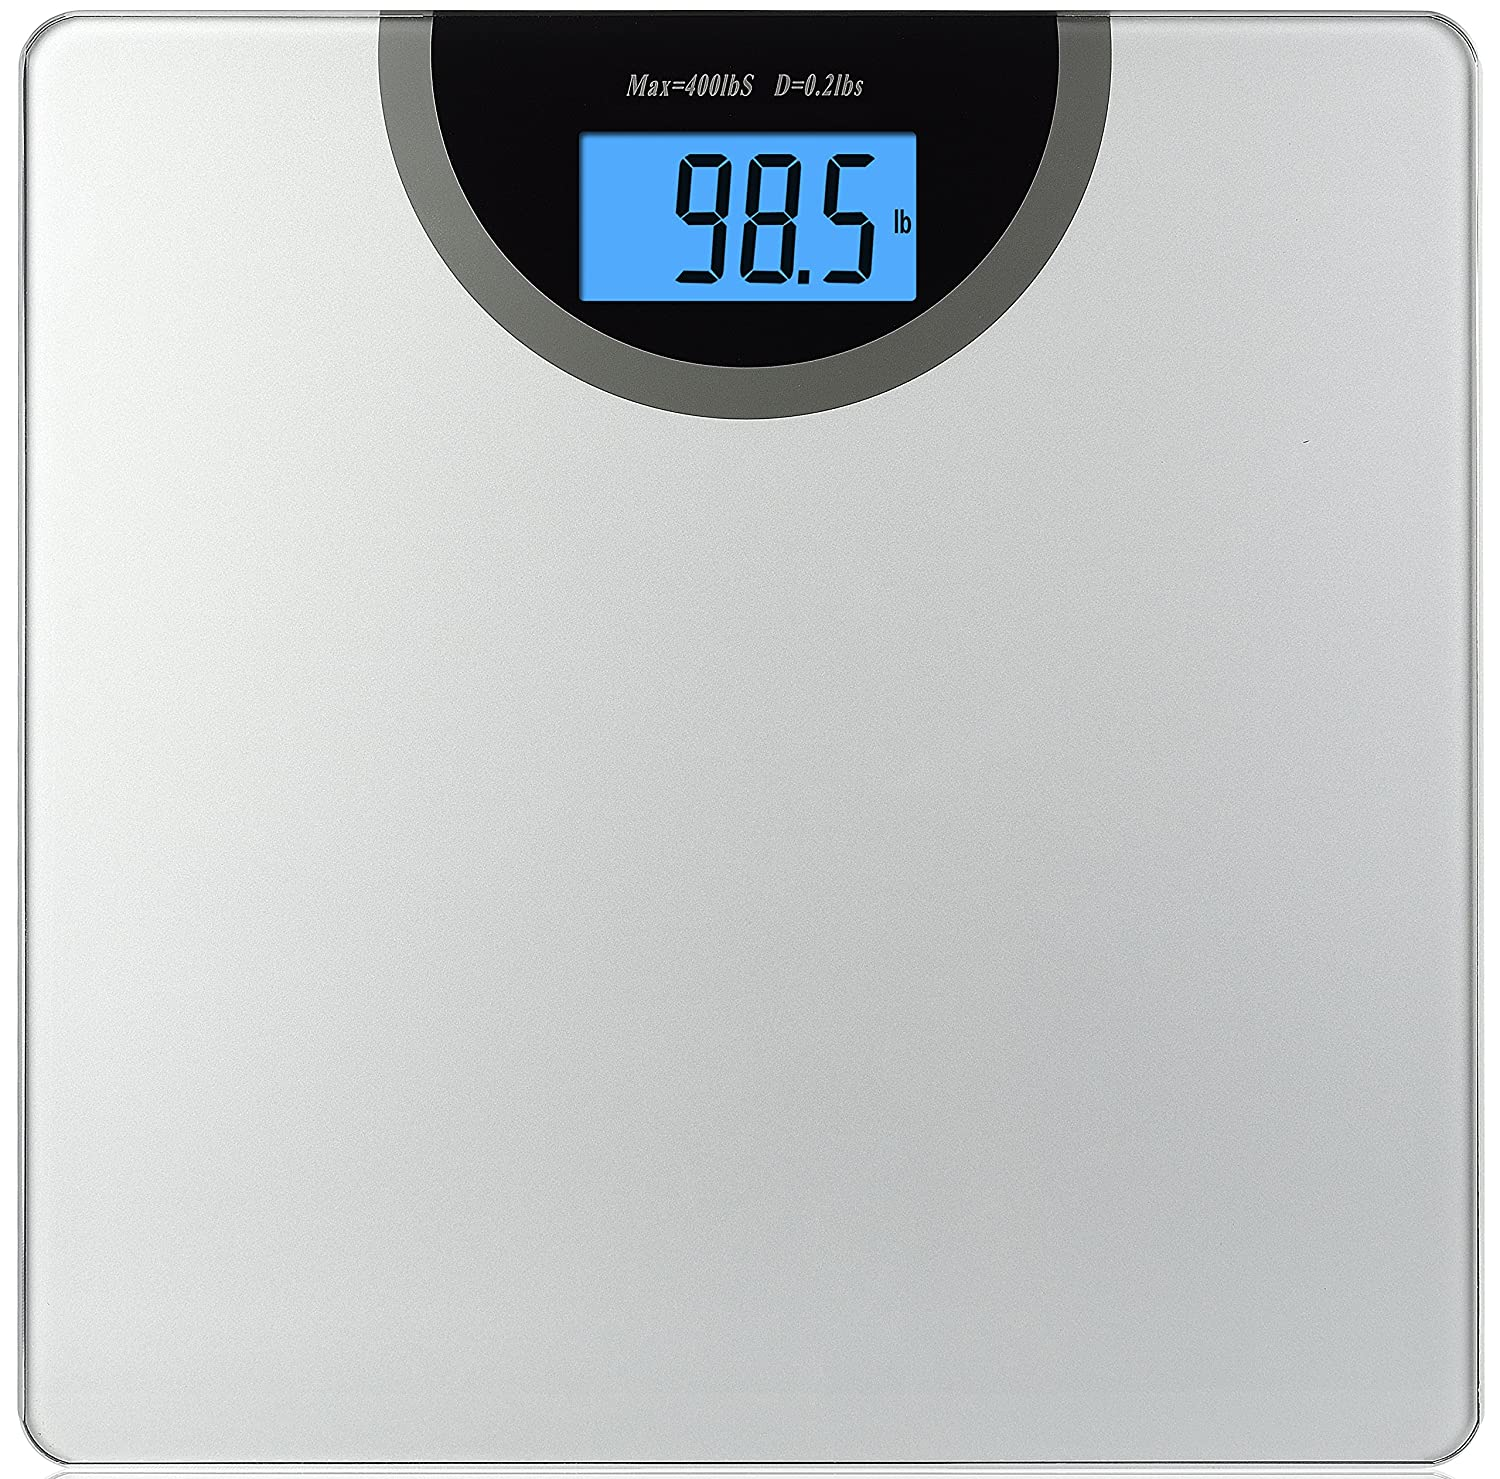 BalanceFrom Digital Body Weight Bathroom Scale with Step-On Technology and Backlight Display, 400 Pounds, Silver BFHA-B400ST